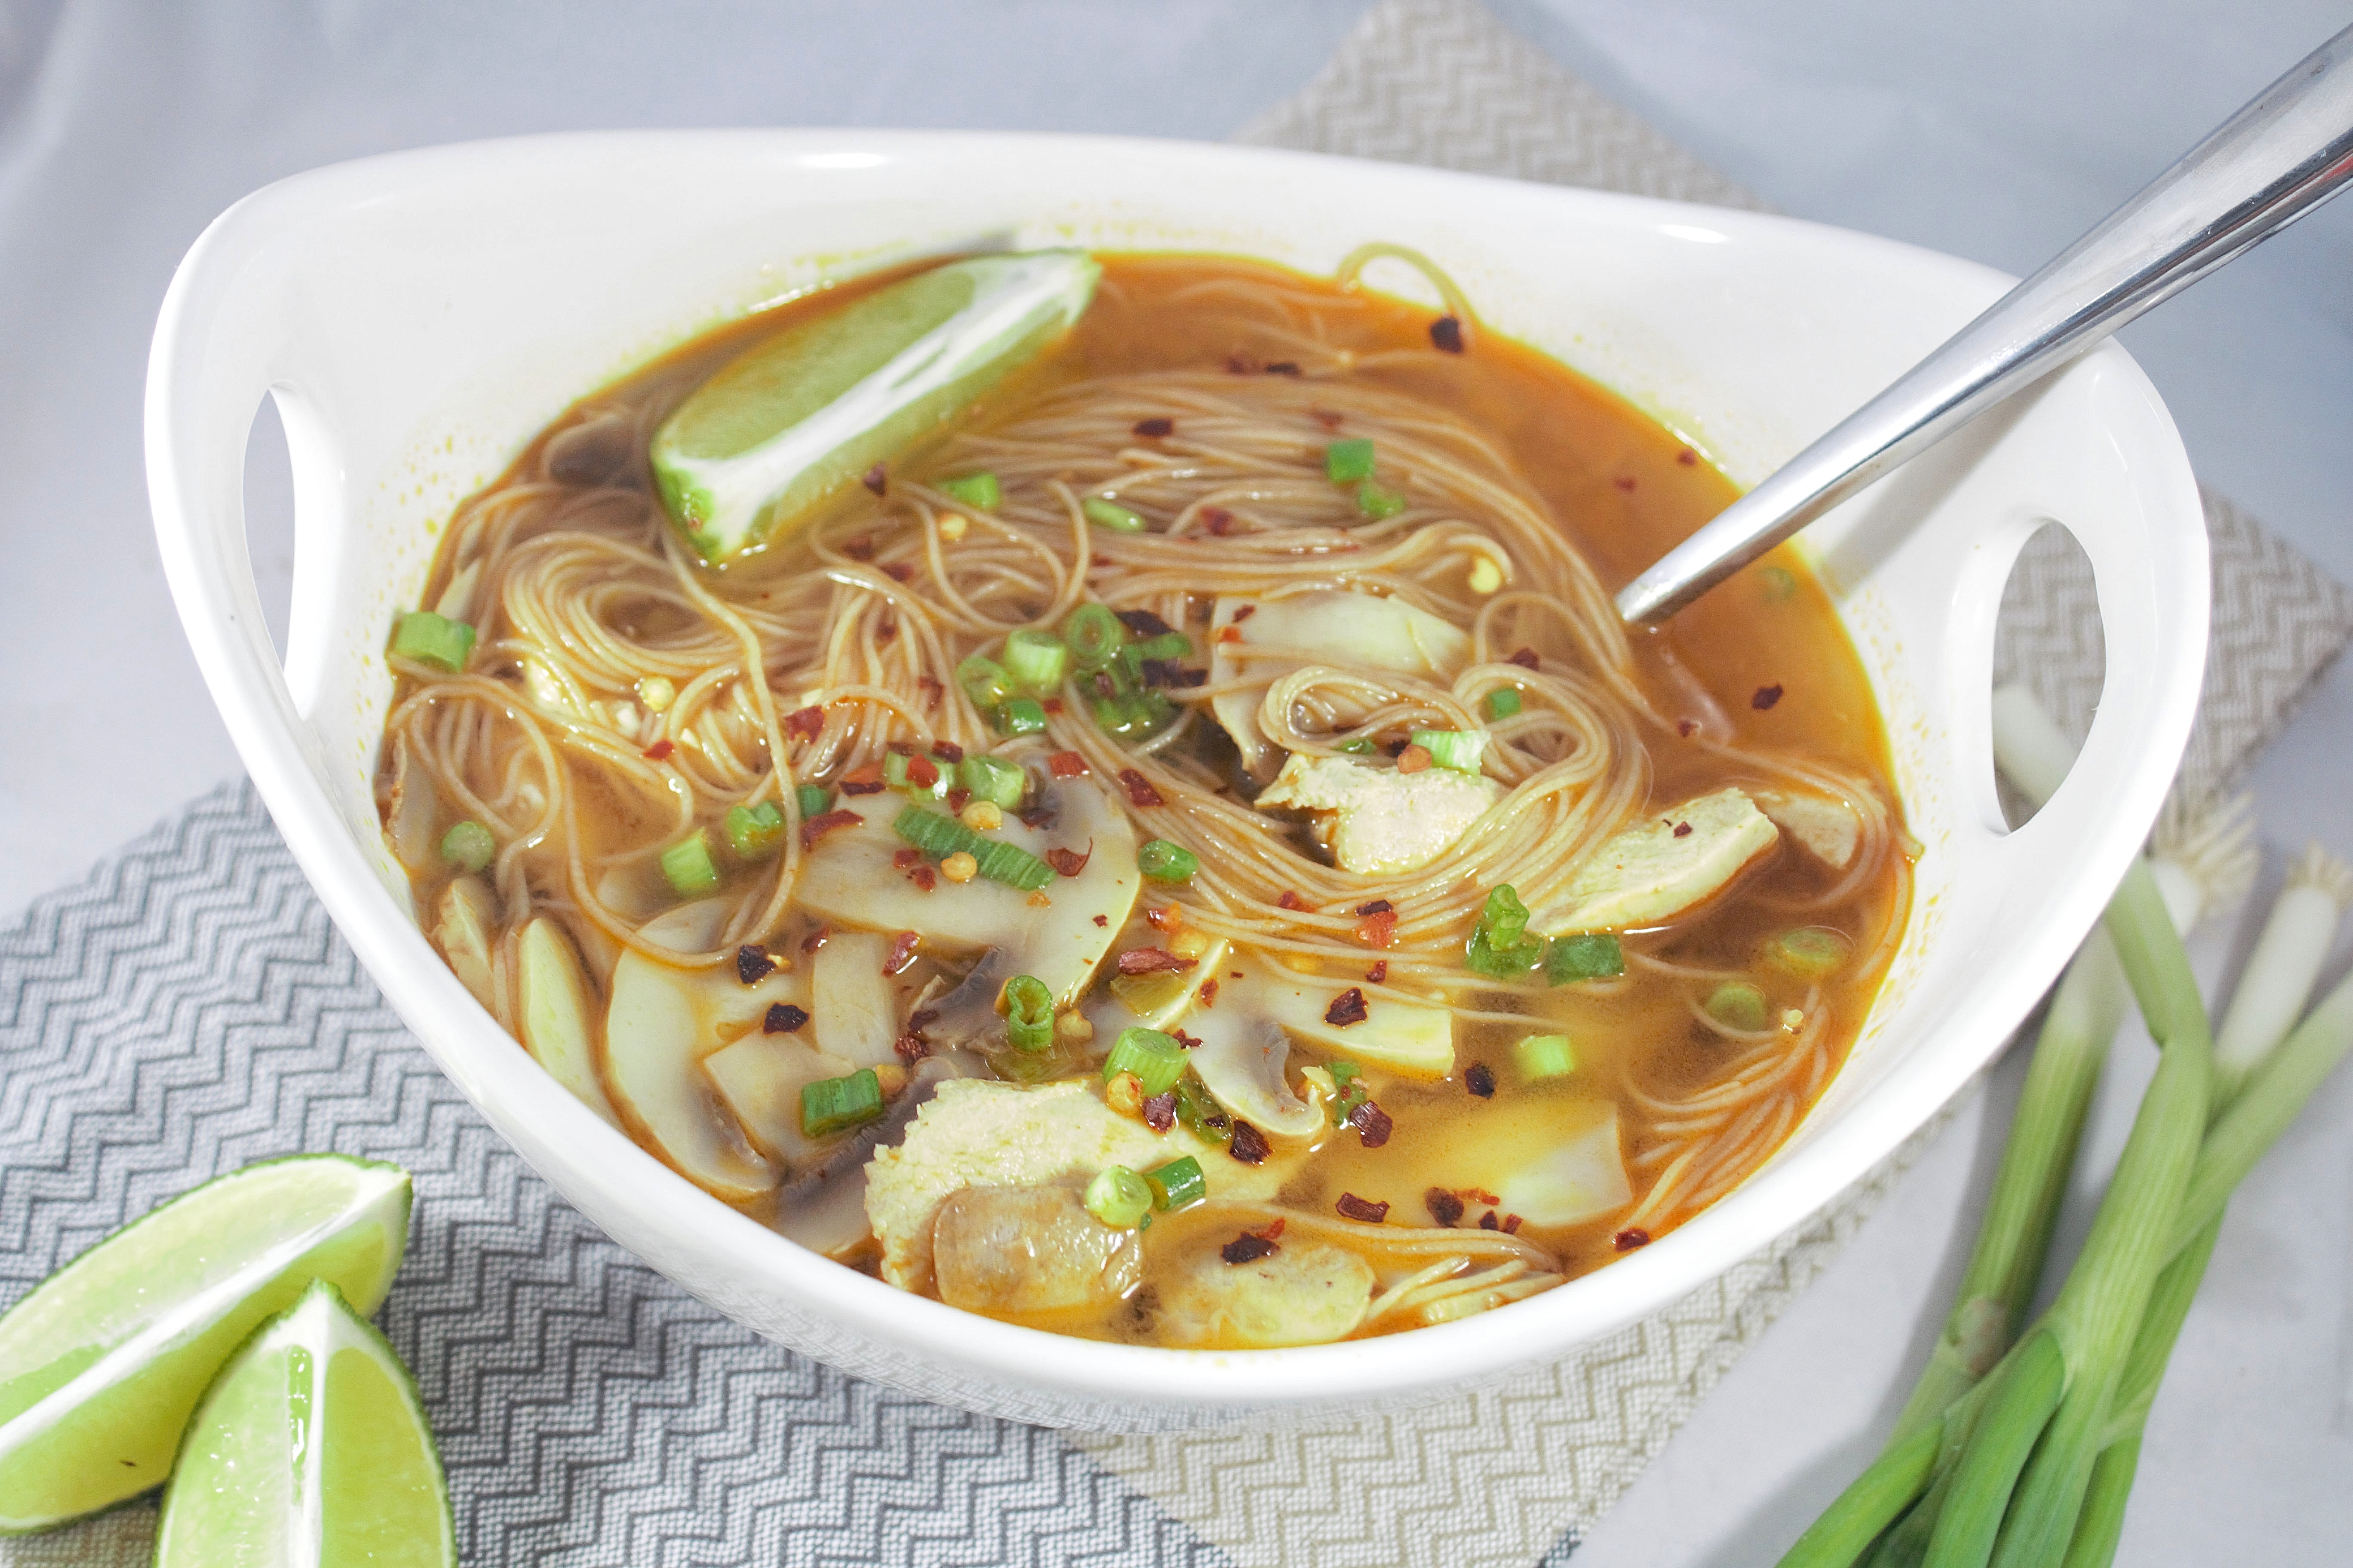 Calories in spicy asian vegetable soup